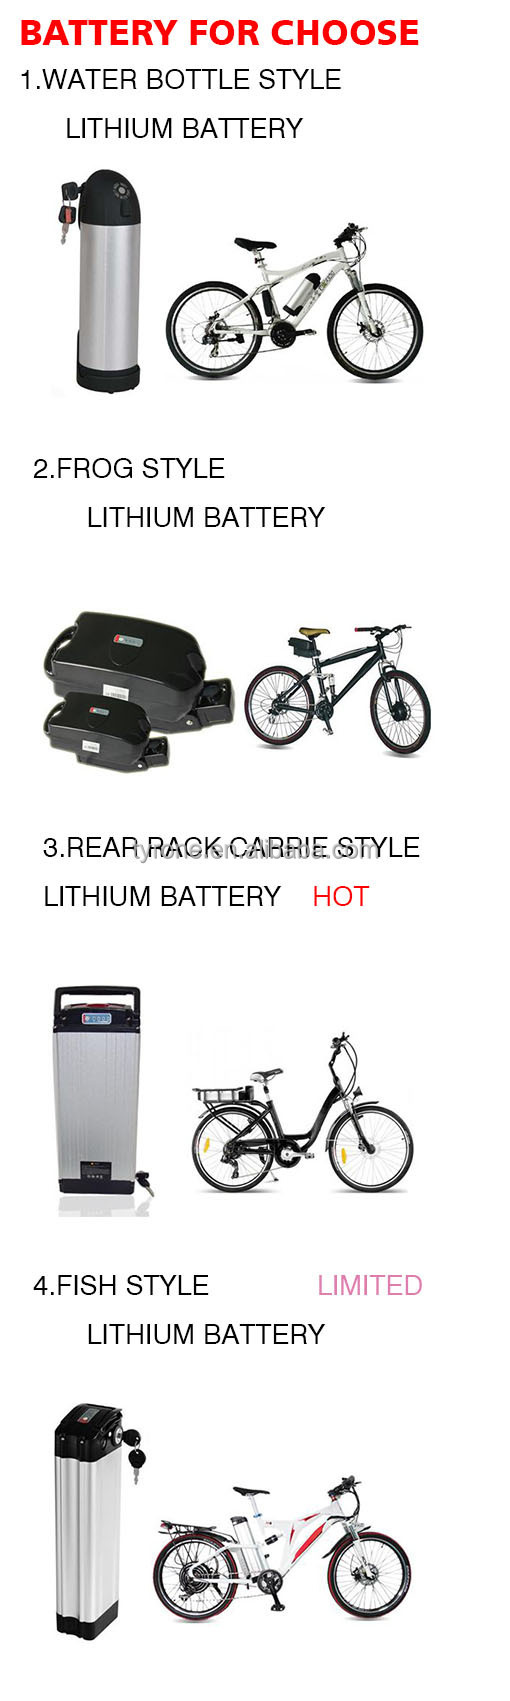 """24/36/48 Voltage and Brushless Design Freely! 26"""" 48v 250w-1500w electric bicycle kits/Rear/Front wheel motor kit"""